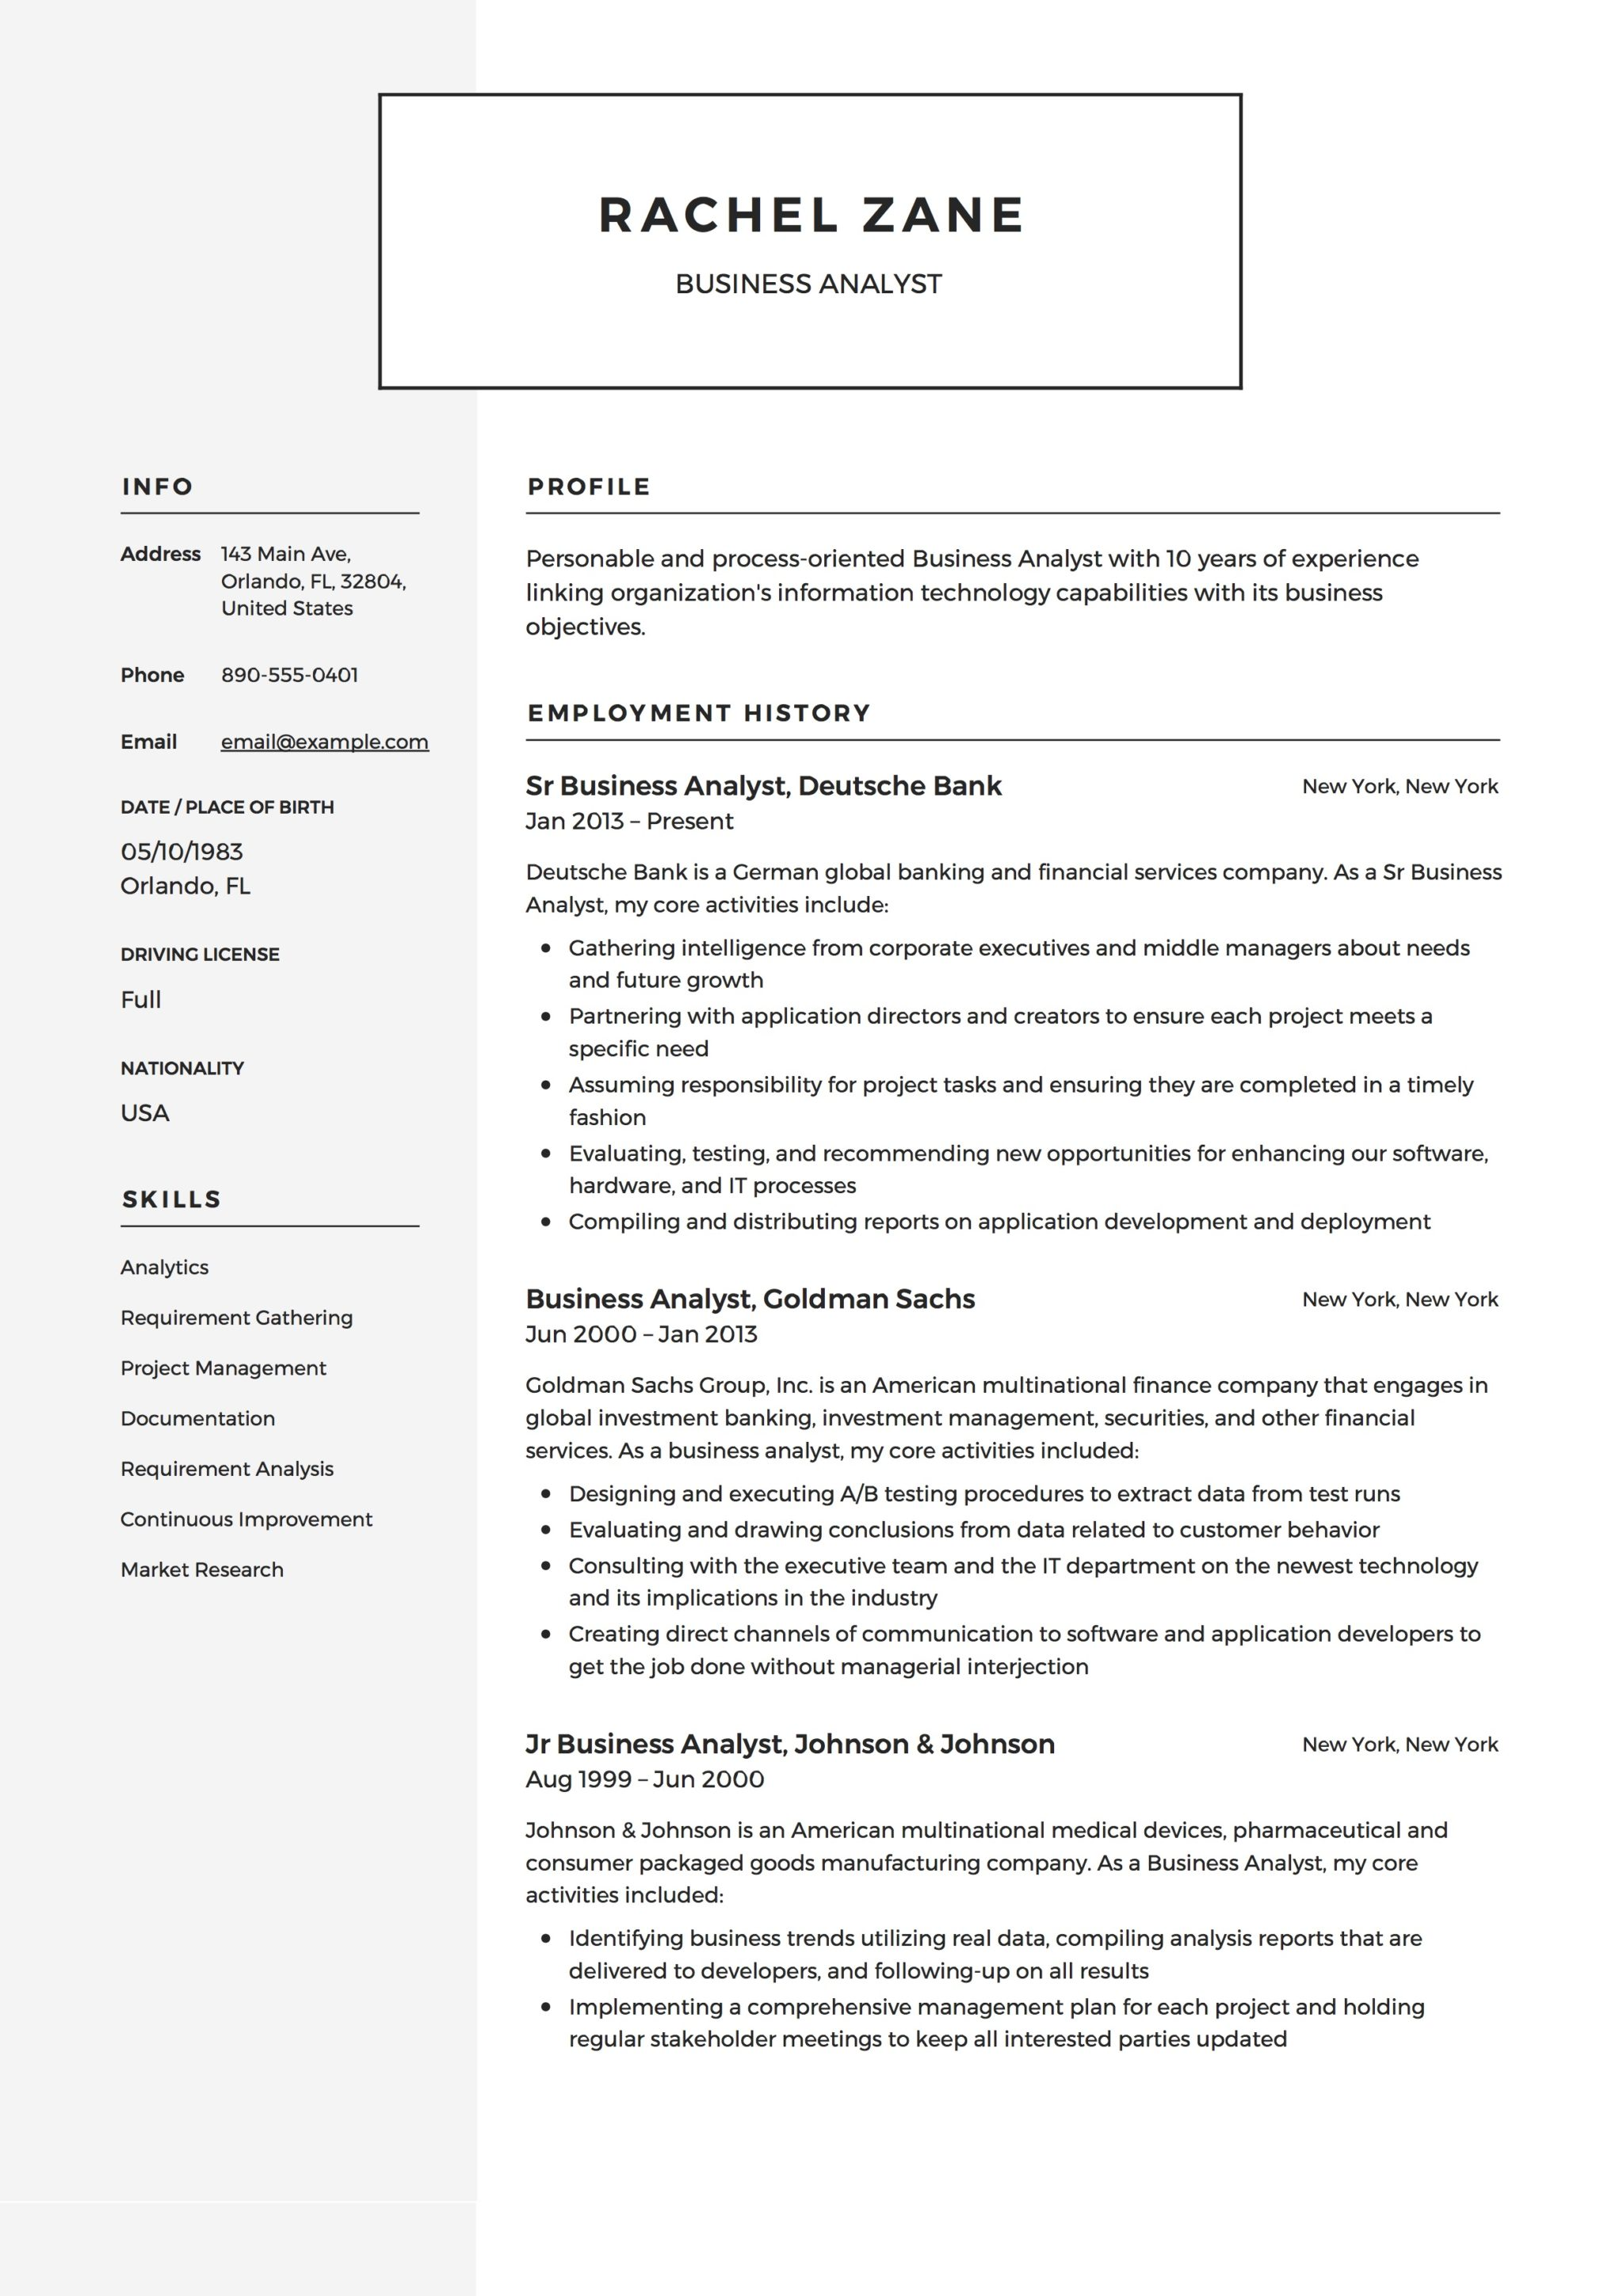 12 business analyst resume samples 2018 free downloads resume template business analyst accmission Choice Image